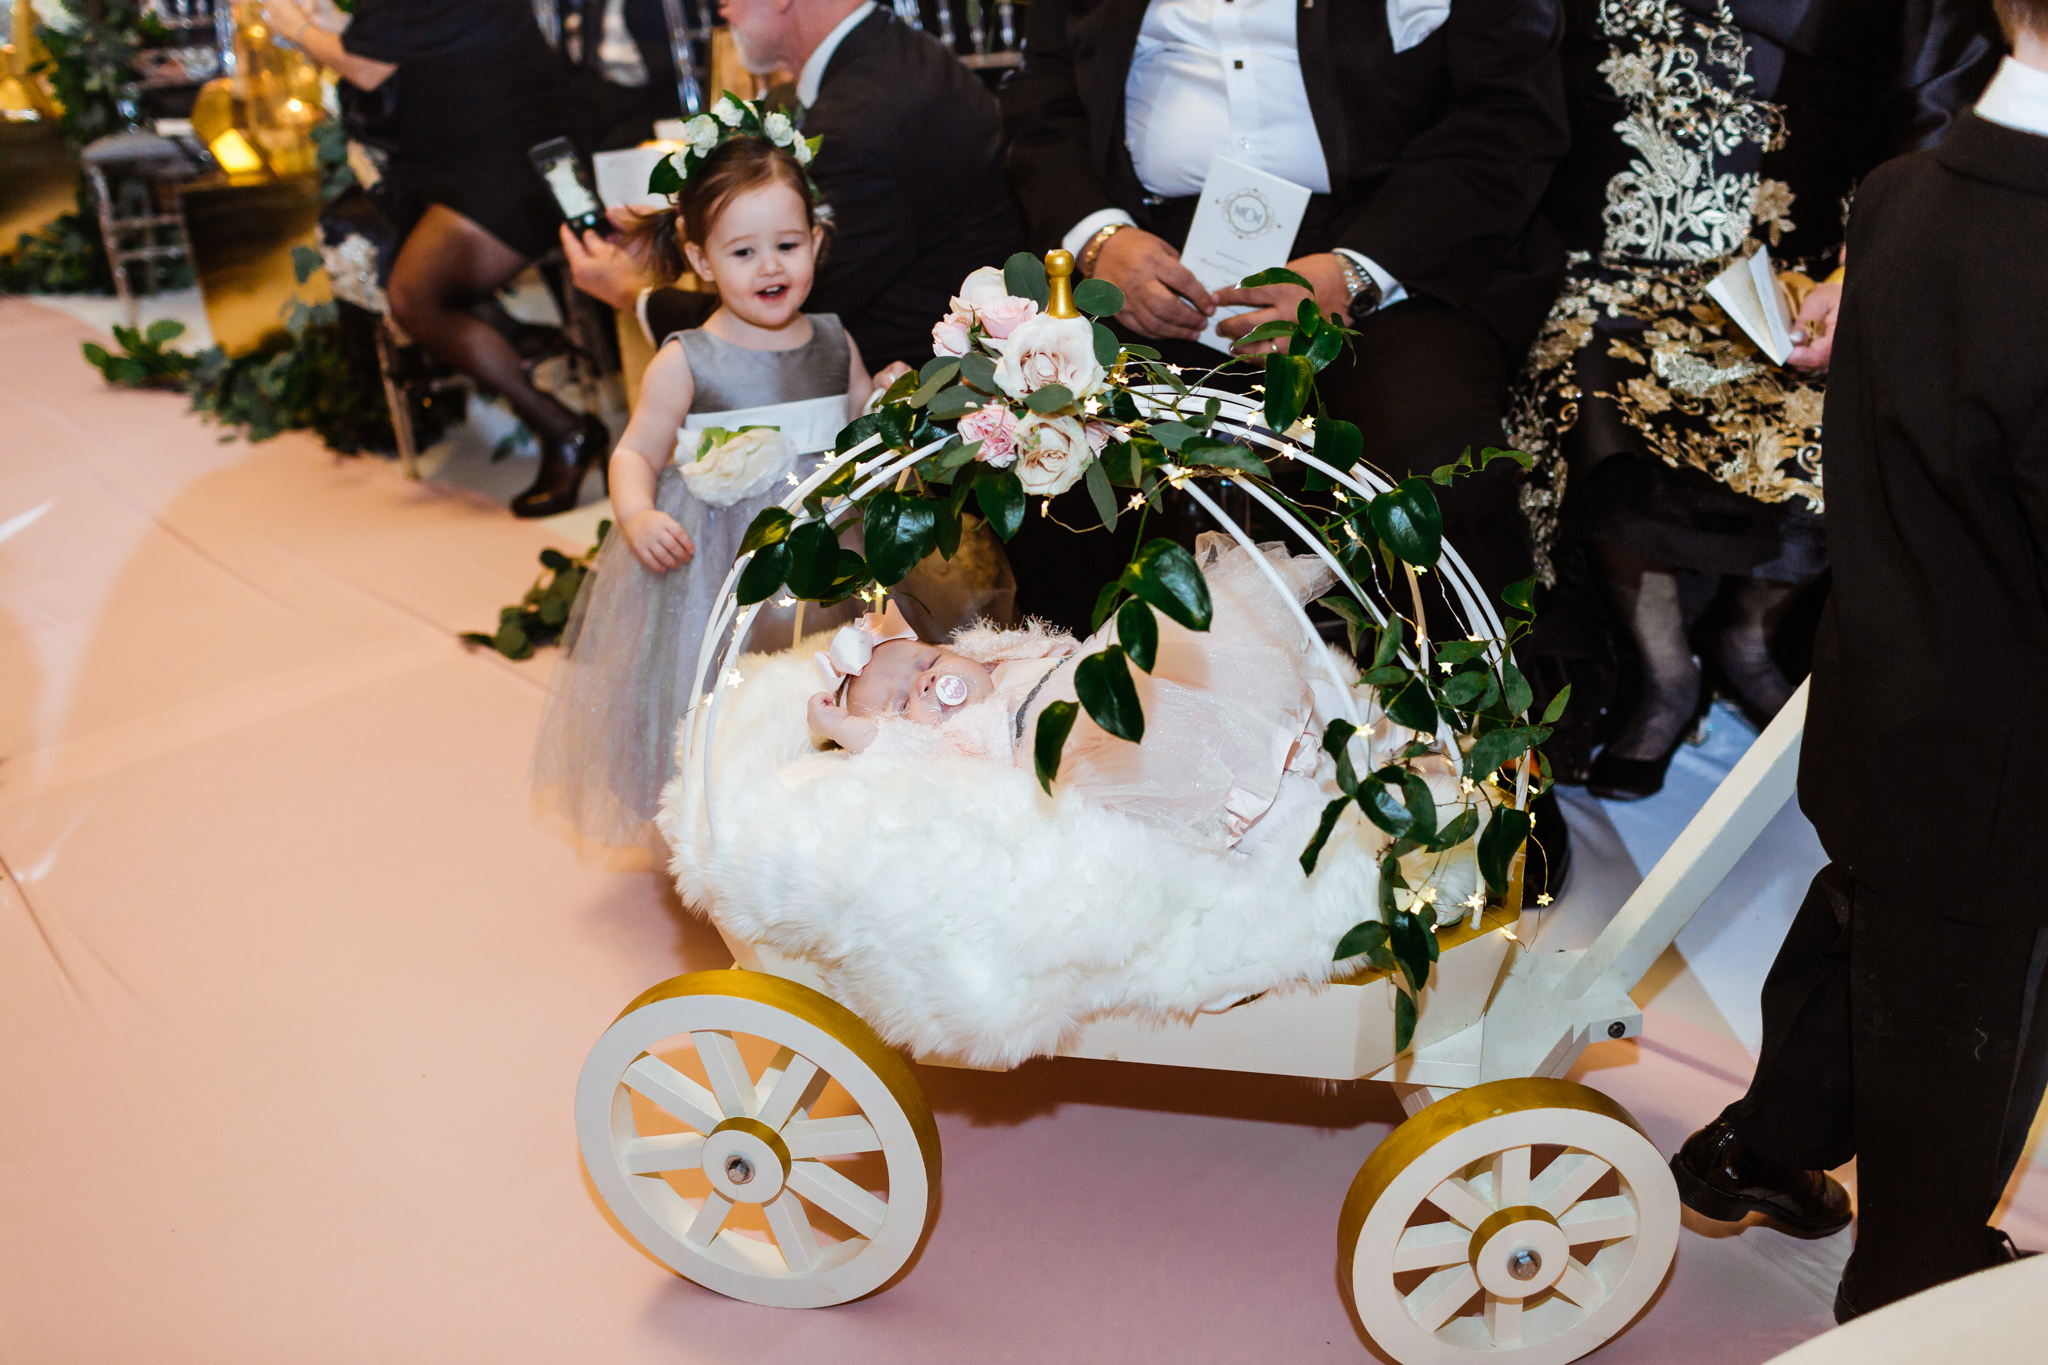 Sleeping baby in a carriage goes down the aisle